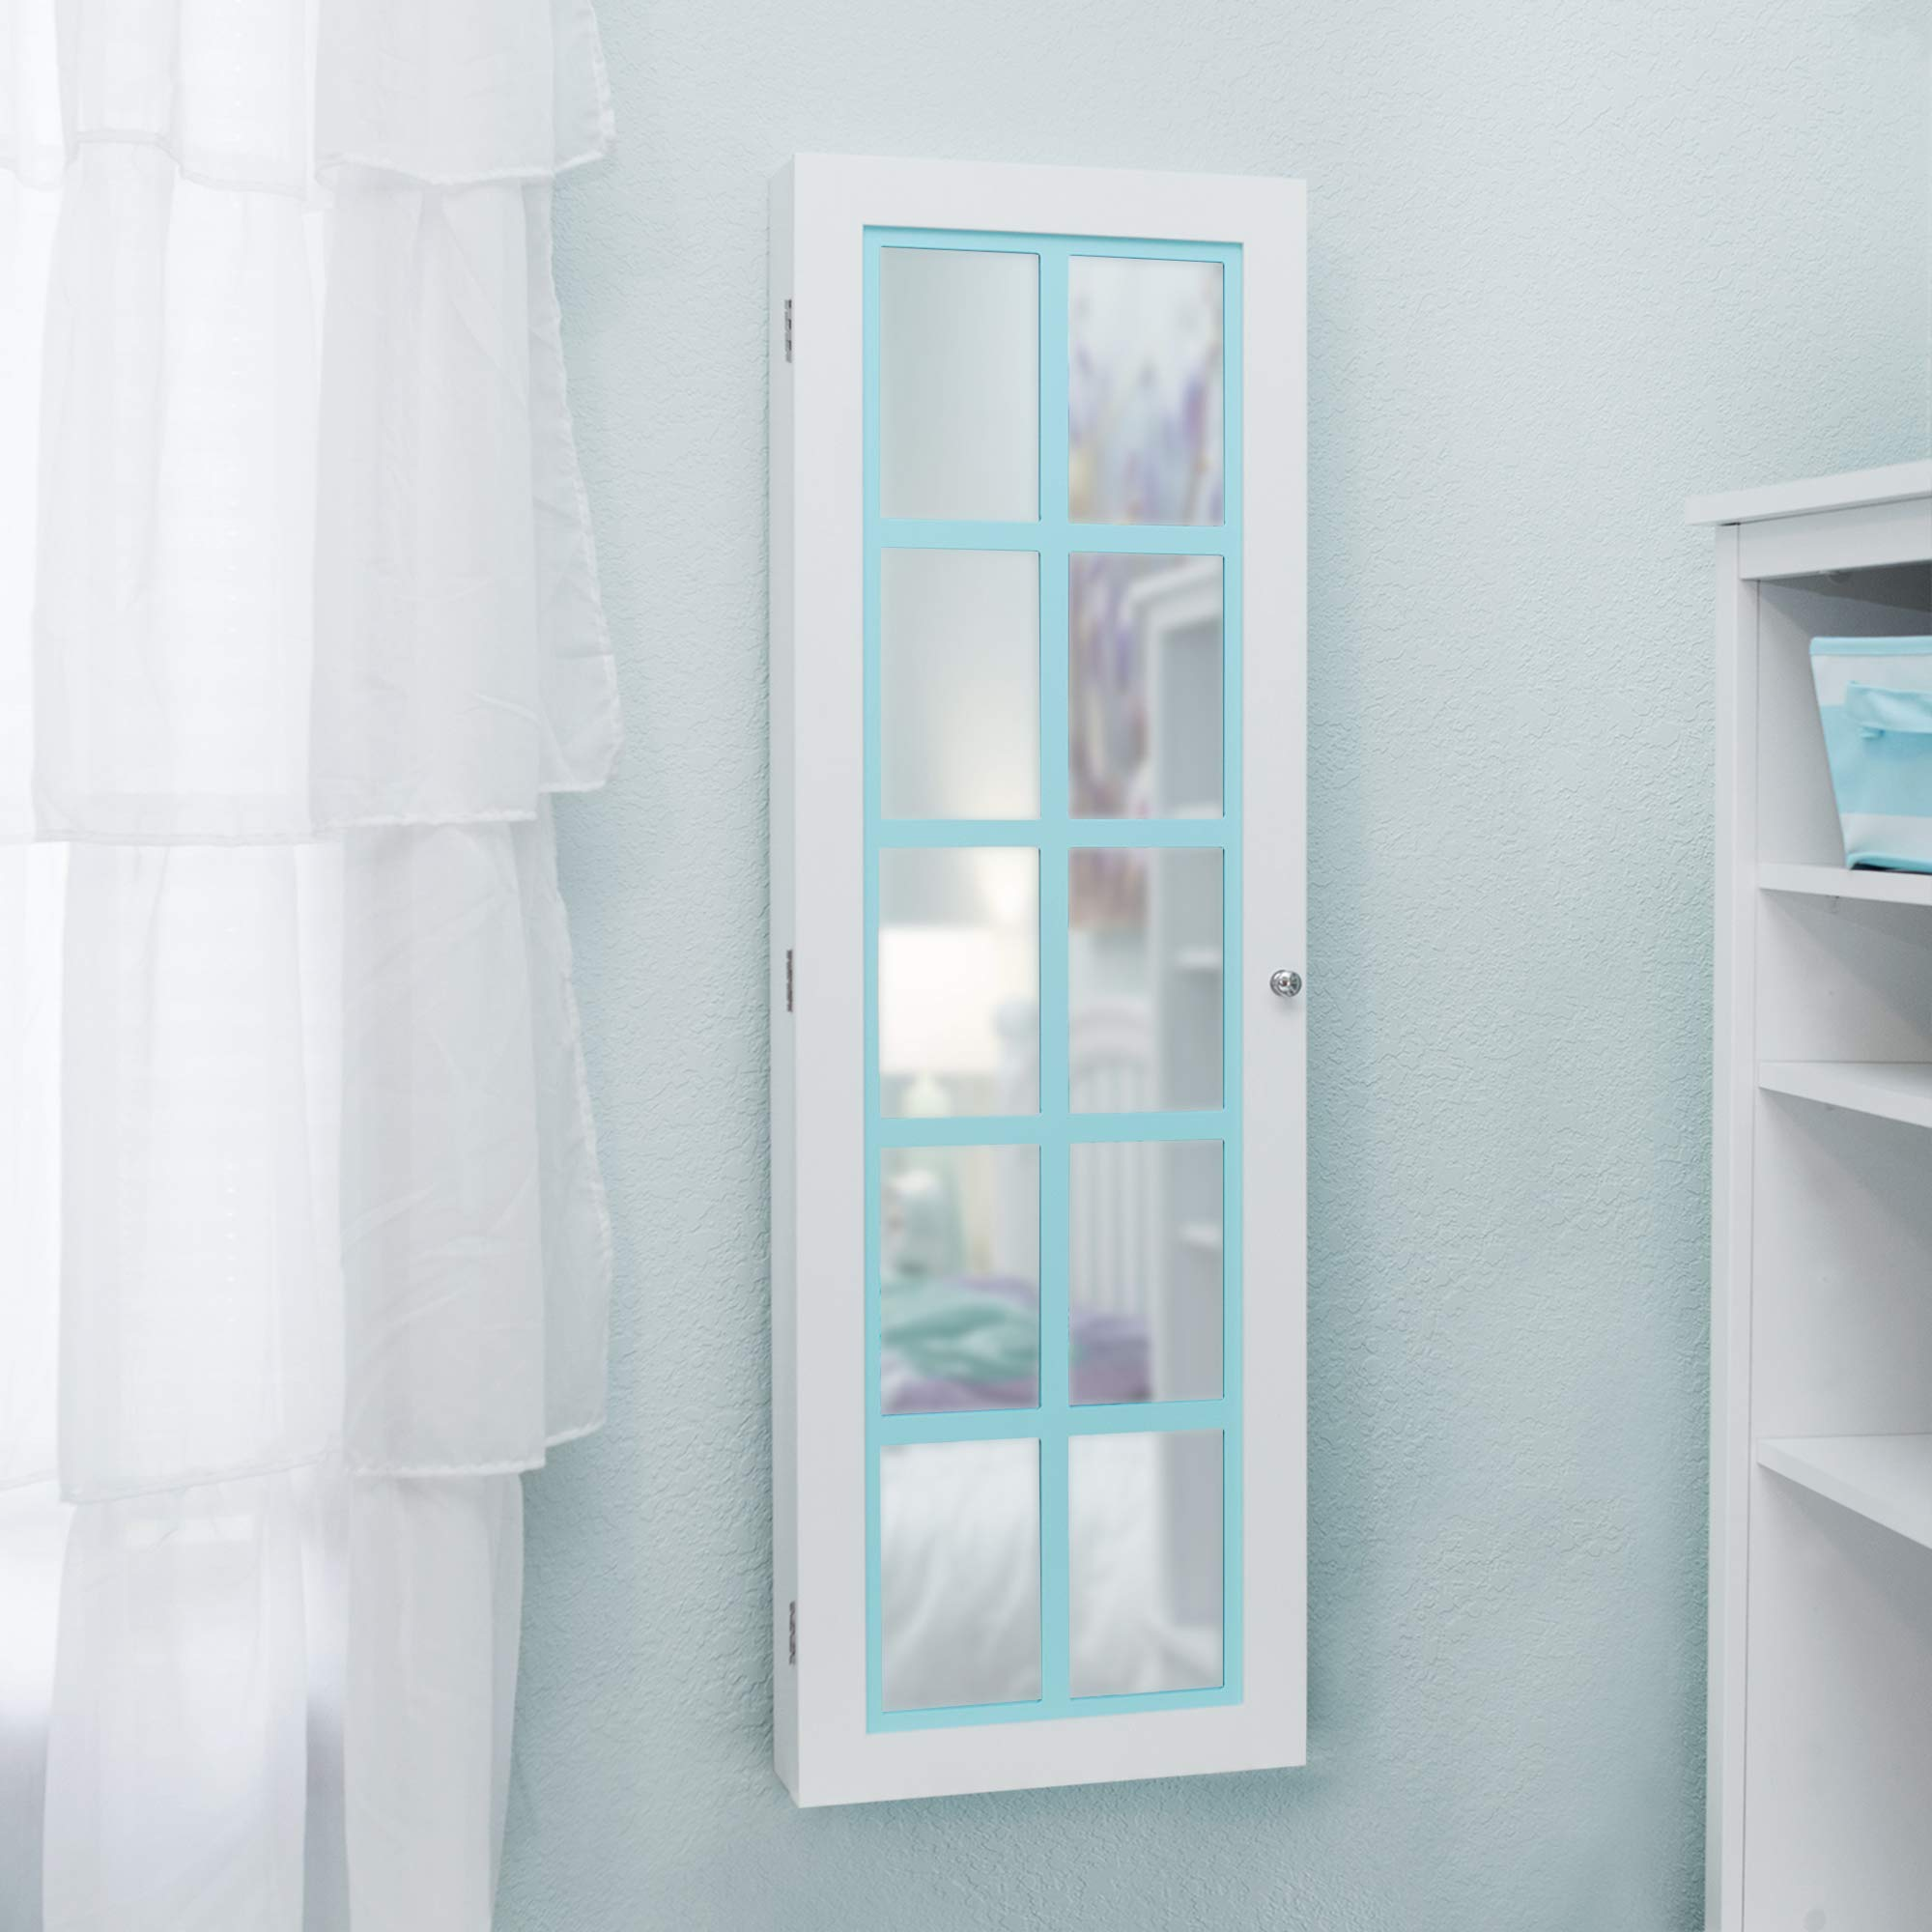 FirsTime & Co. 81005 Aqua Pastel Jewelry Armoire Accent Wall Mirror, 43'' x 14'' x 3.5'', White by FirsTime & Co.